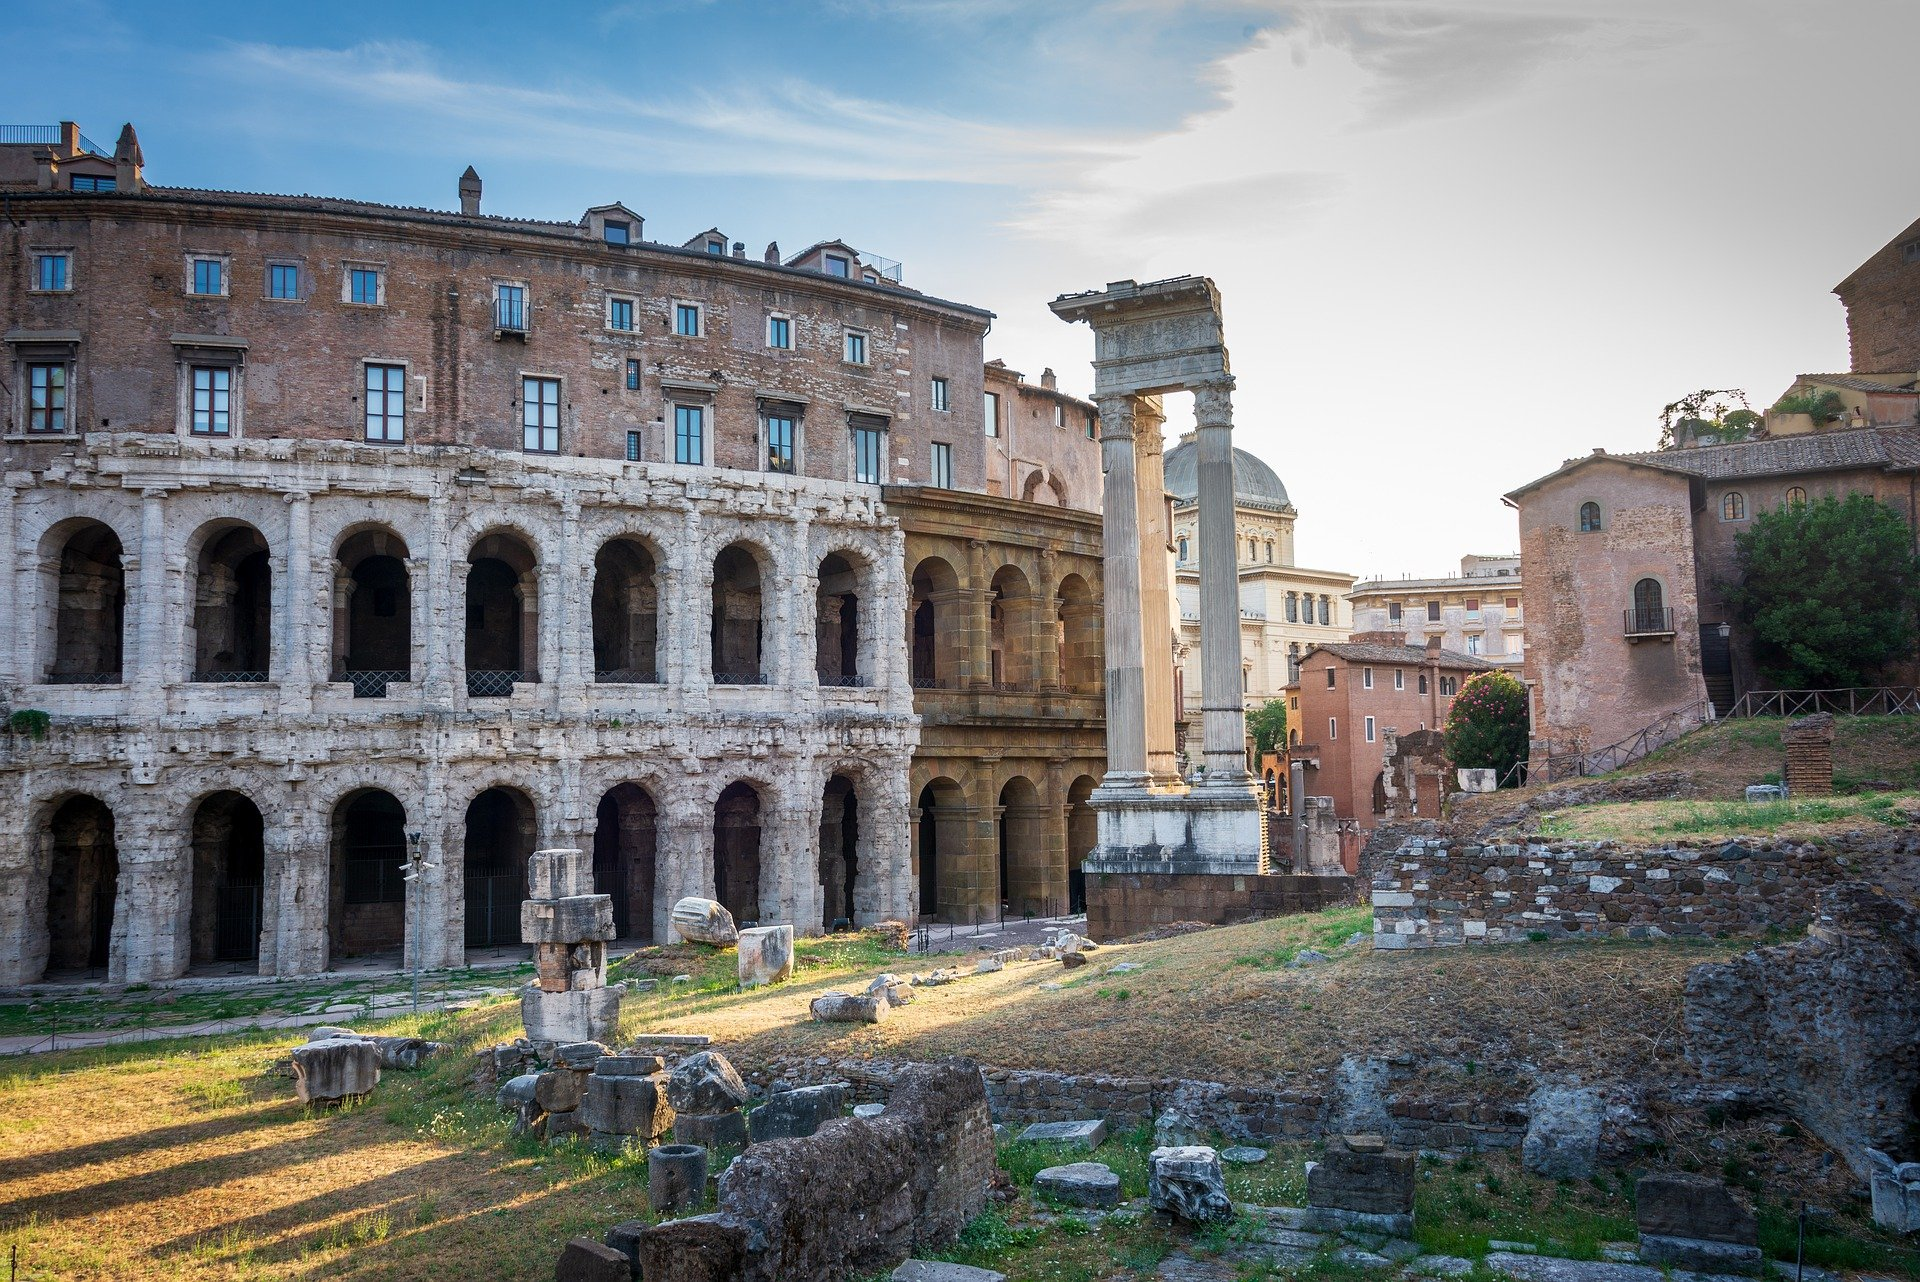 ruins in Rome, Italy